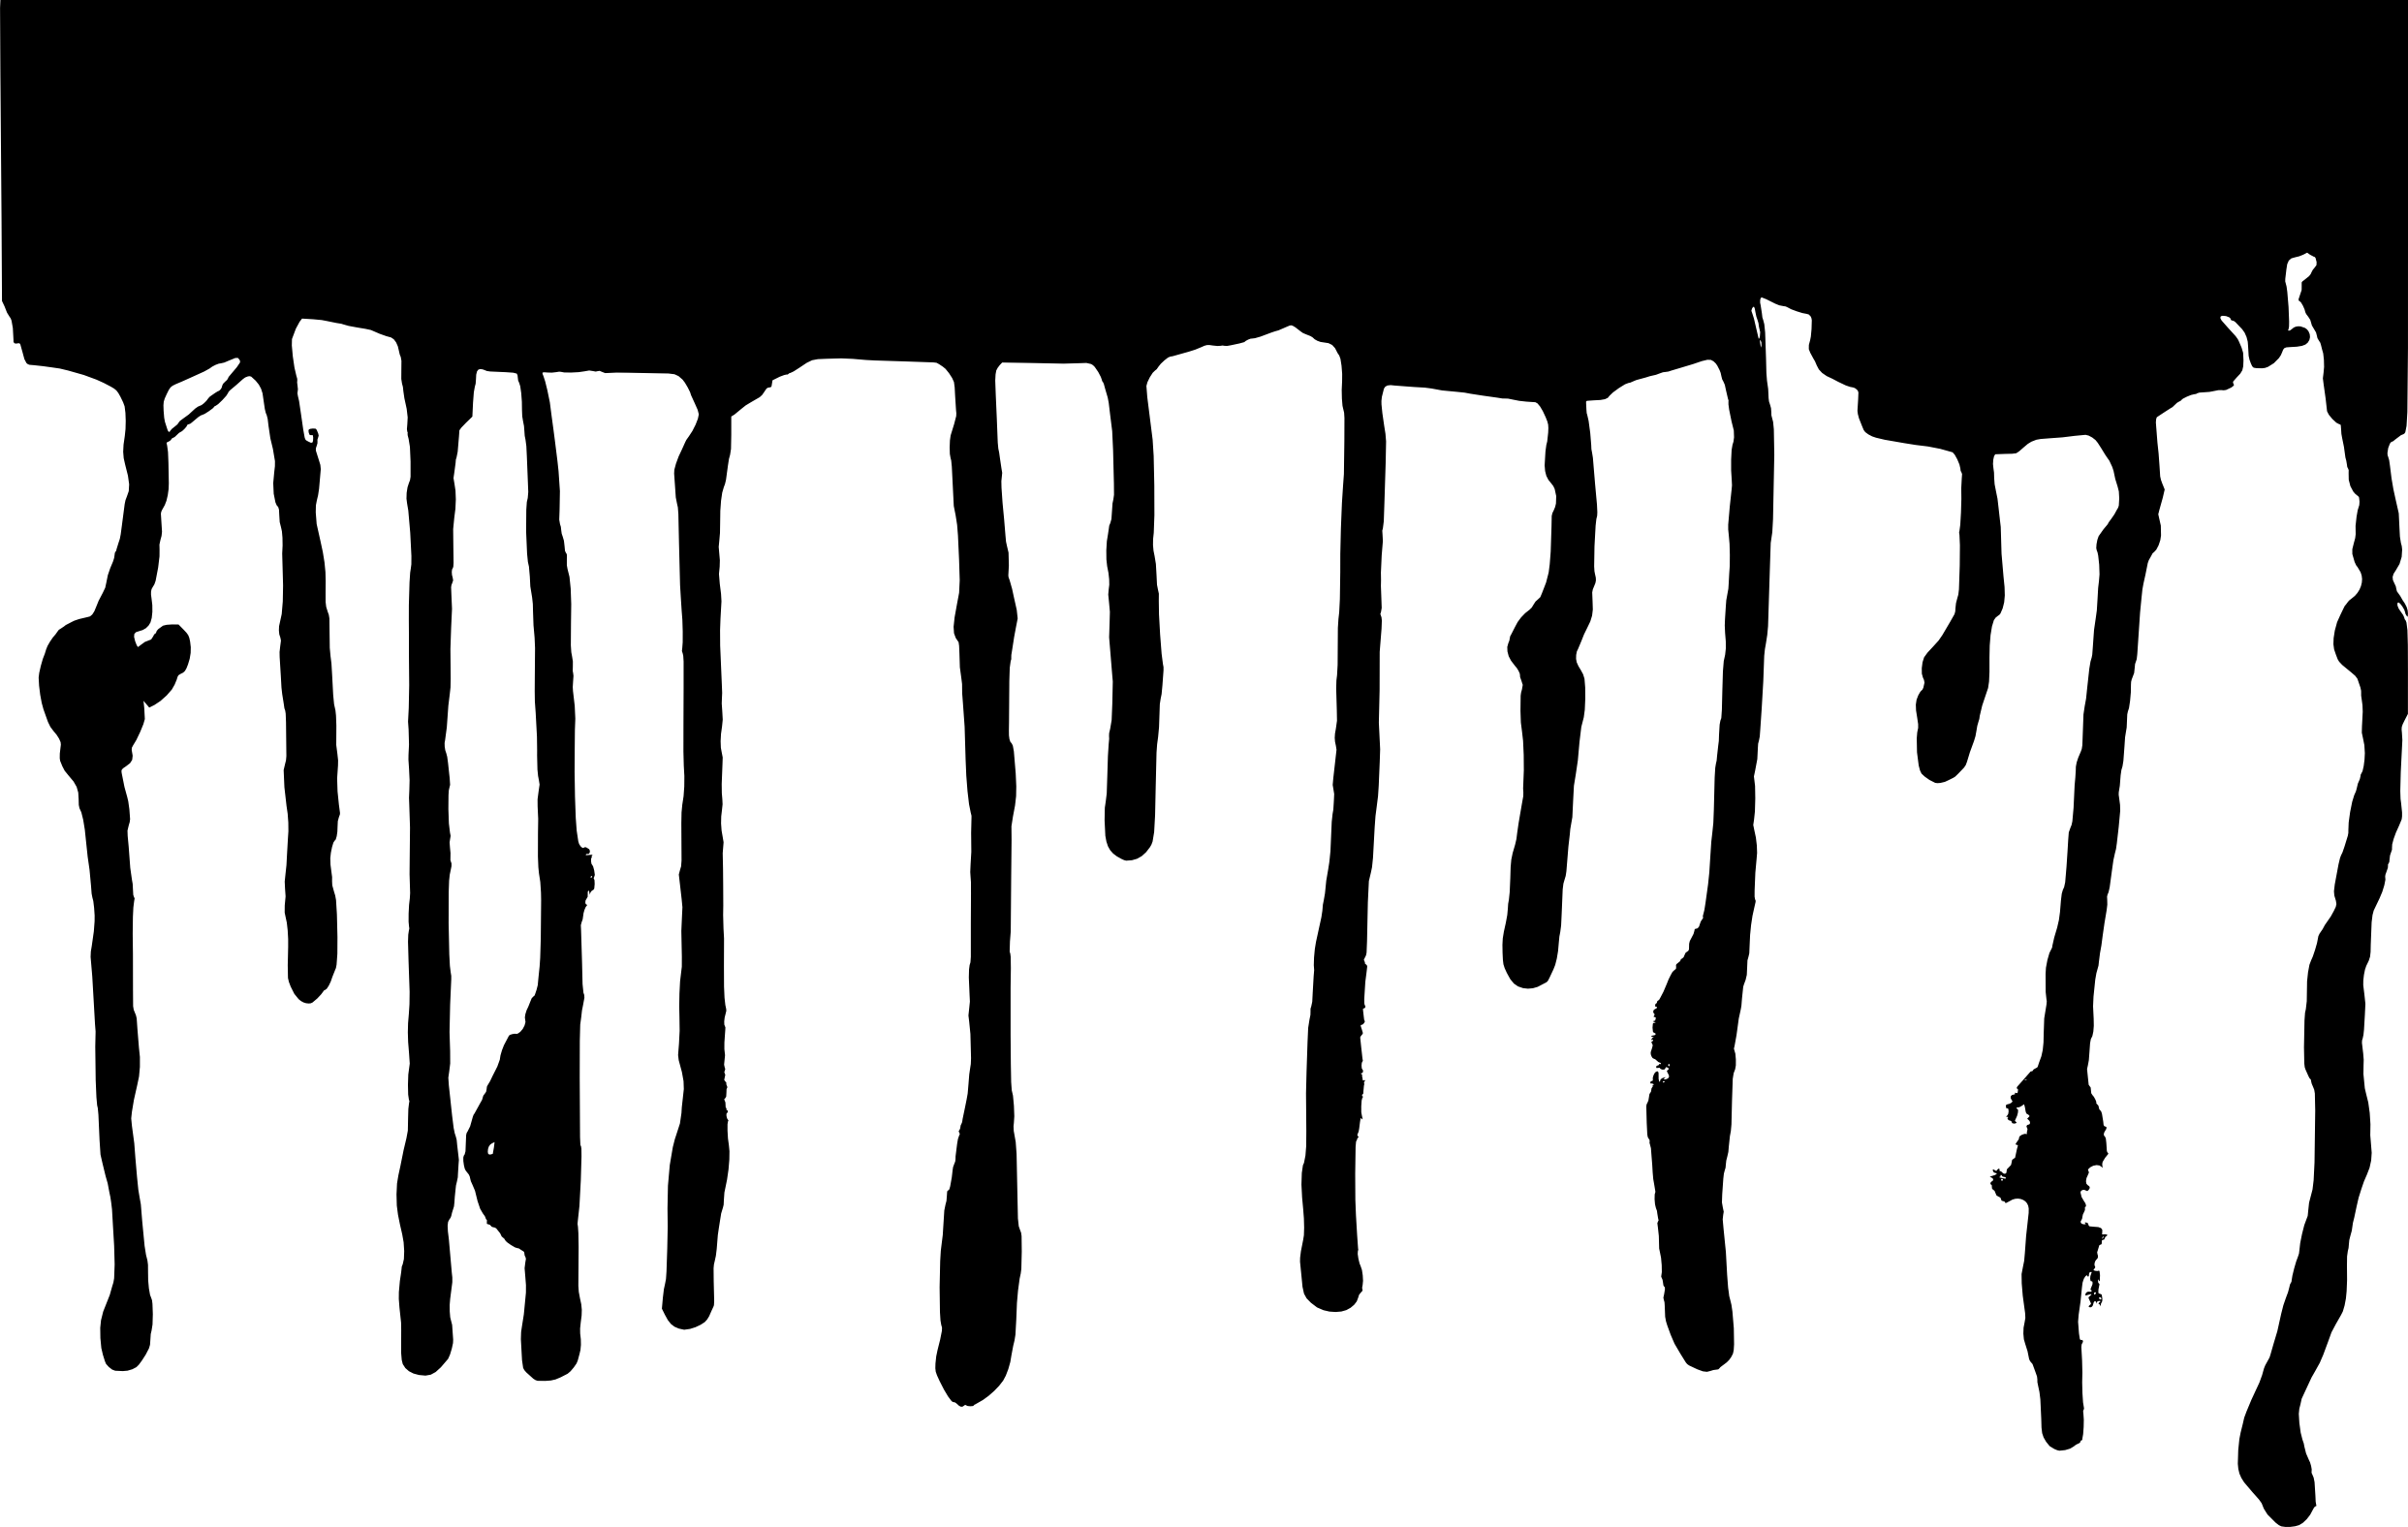 Paint dripping png. Drip top transparent